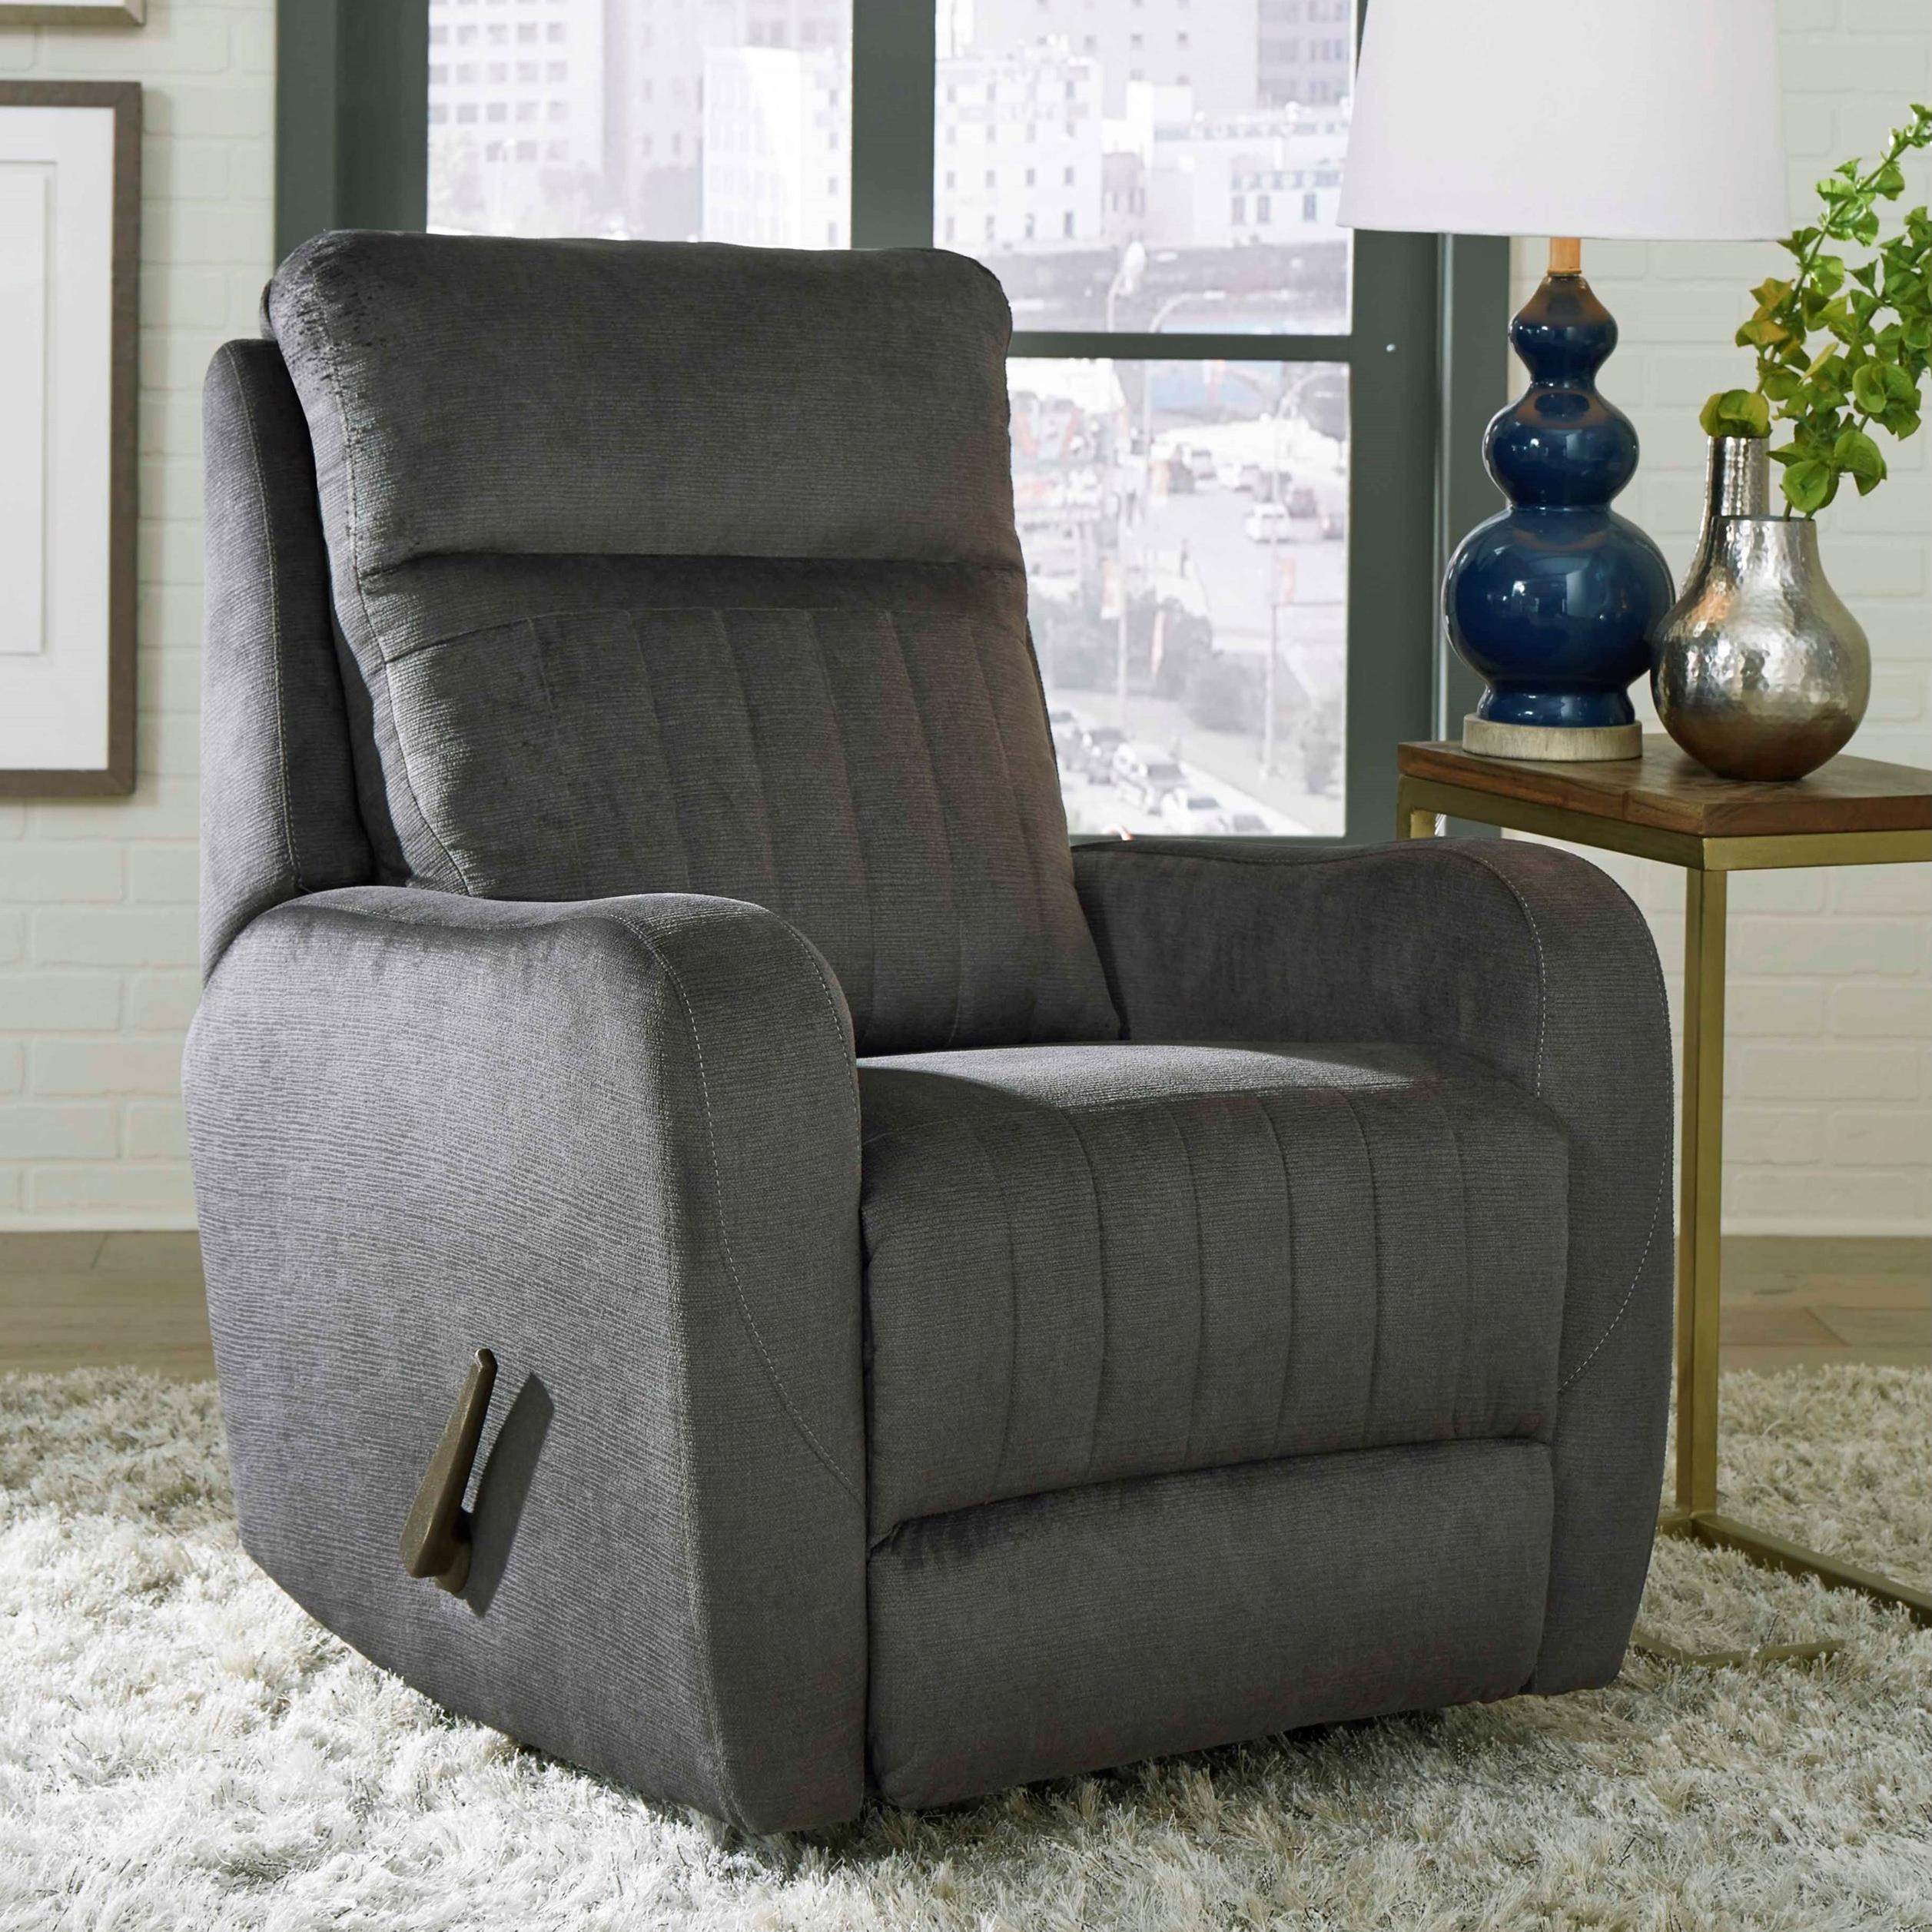 Racetrack Rocker Power Recliner w/ SoCozi by Southern Motion at Lindy's Furniture Company